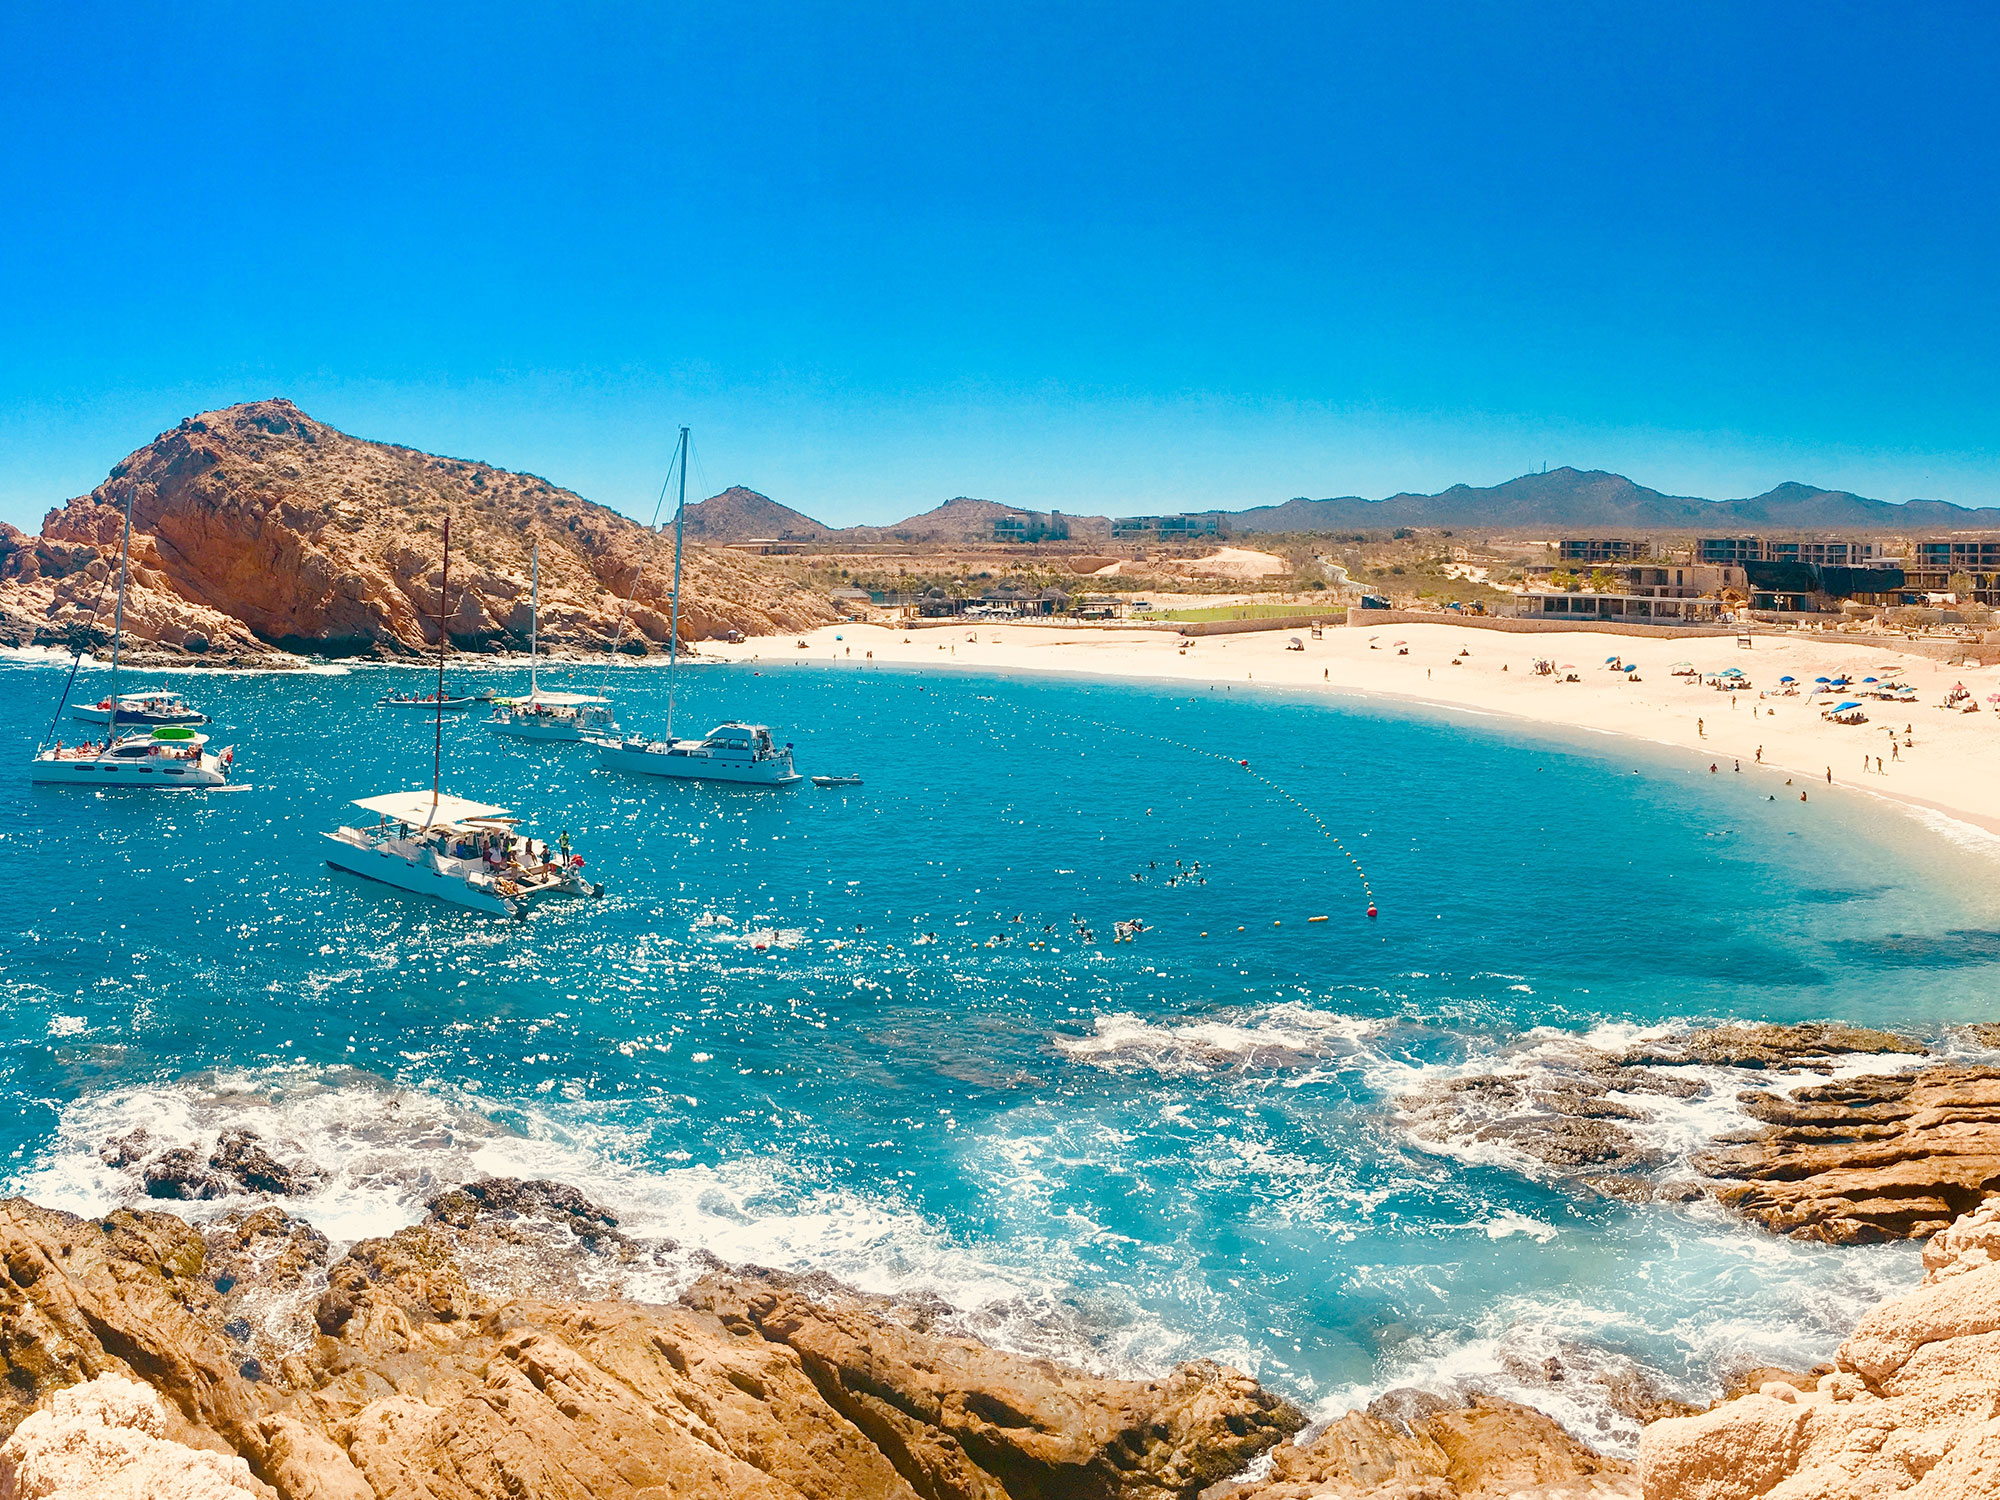 Travel deals and packages for Los Cabos